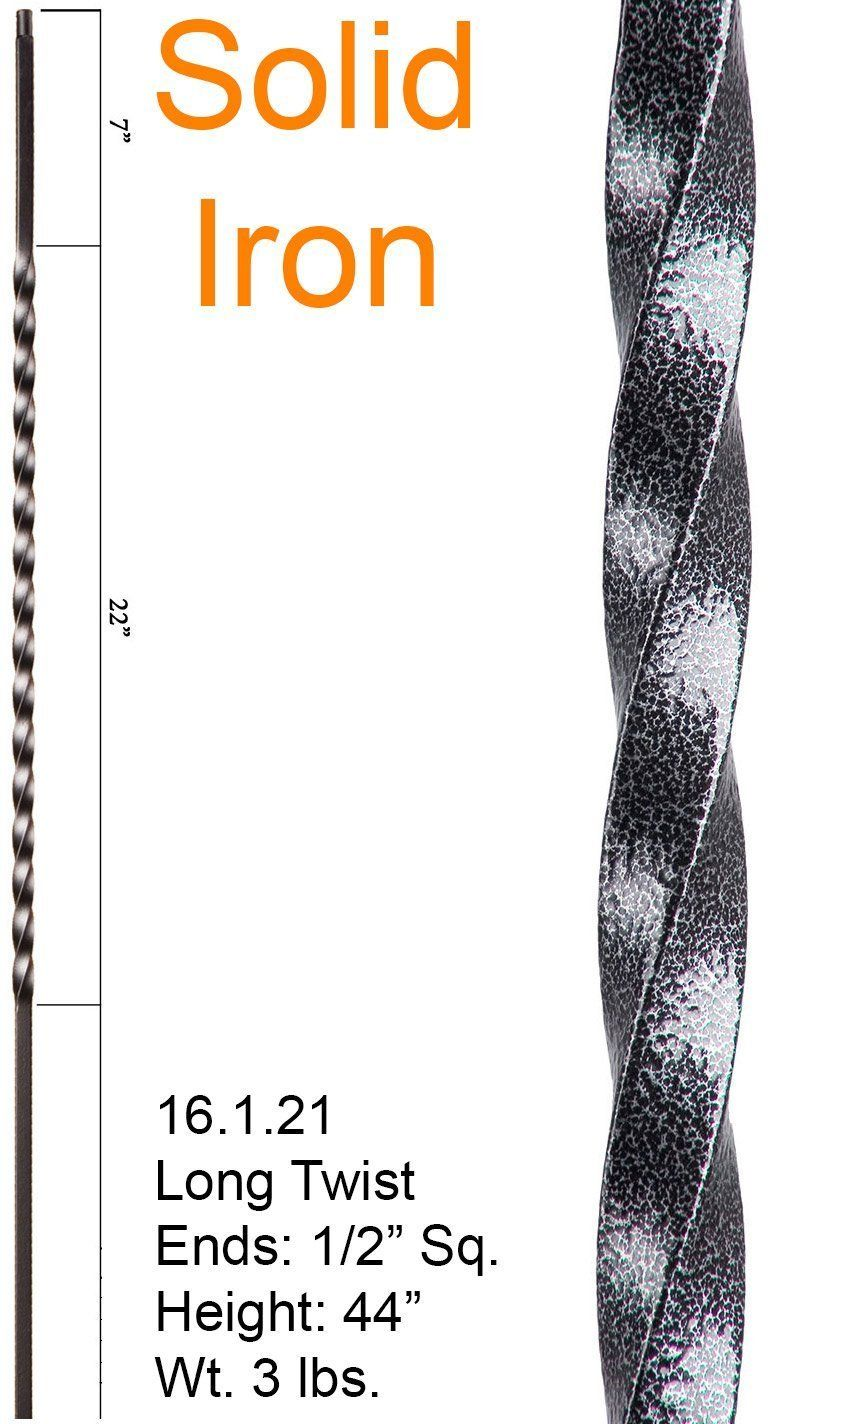 Silver Vein 16.1.21 Long Twist Iron Baluster for Staircase Remodel, Box of 5 - - Amazon.com